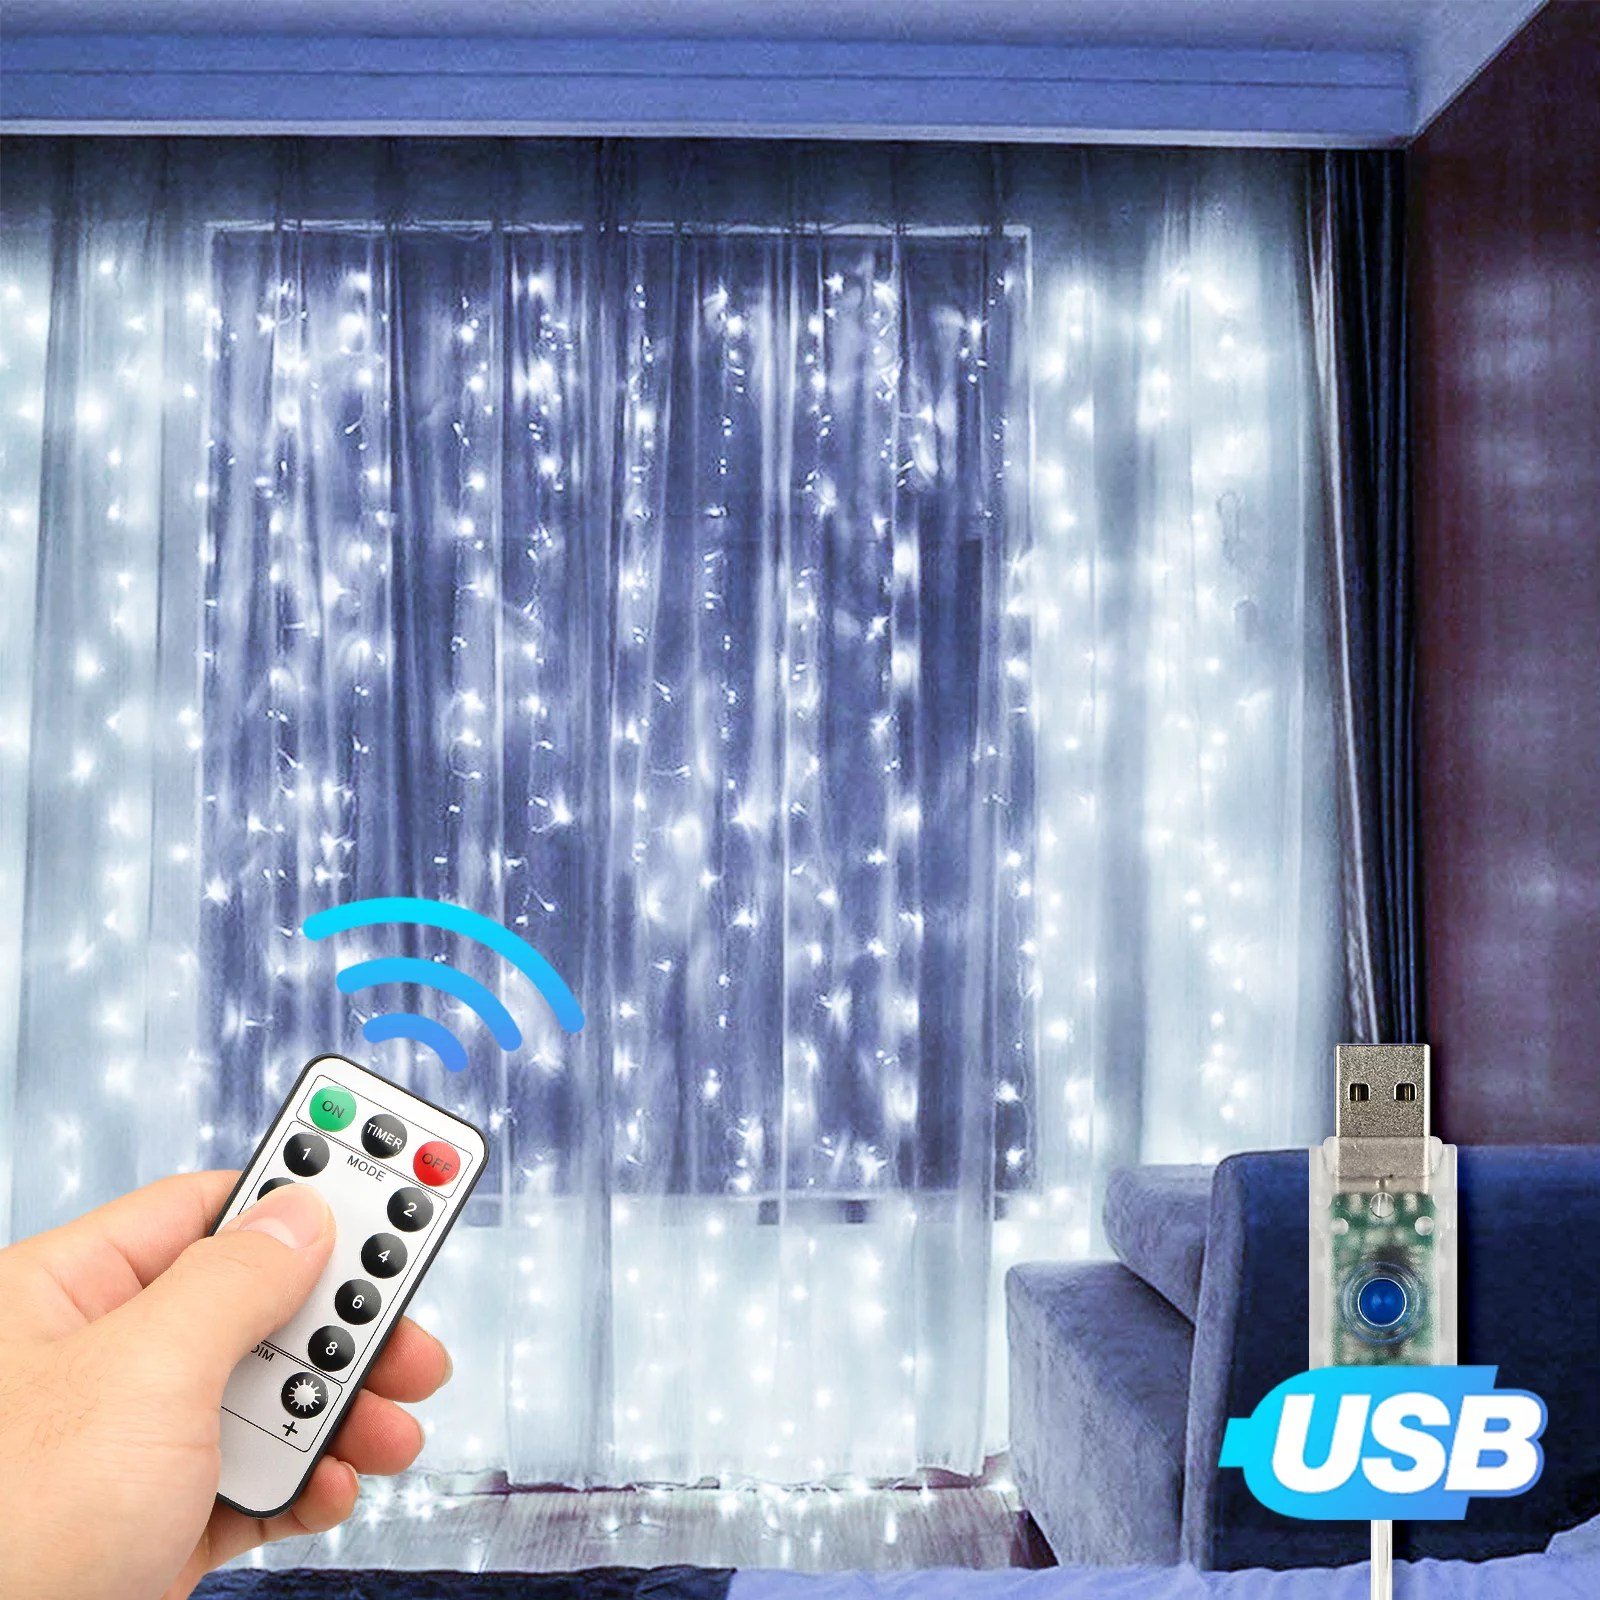 window curtain string light usb 8 modes setting 300 led curtain fairy lights with remote control timer for bedroom home garden wall wedding party